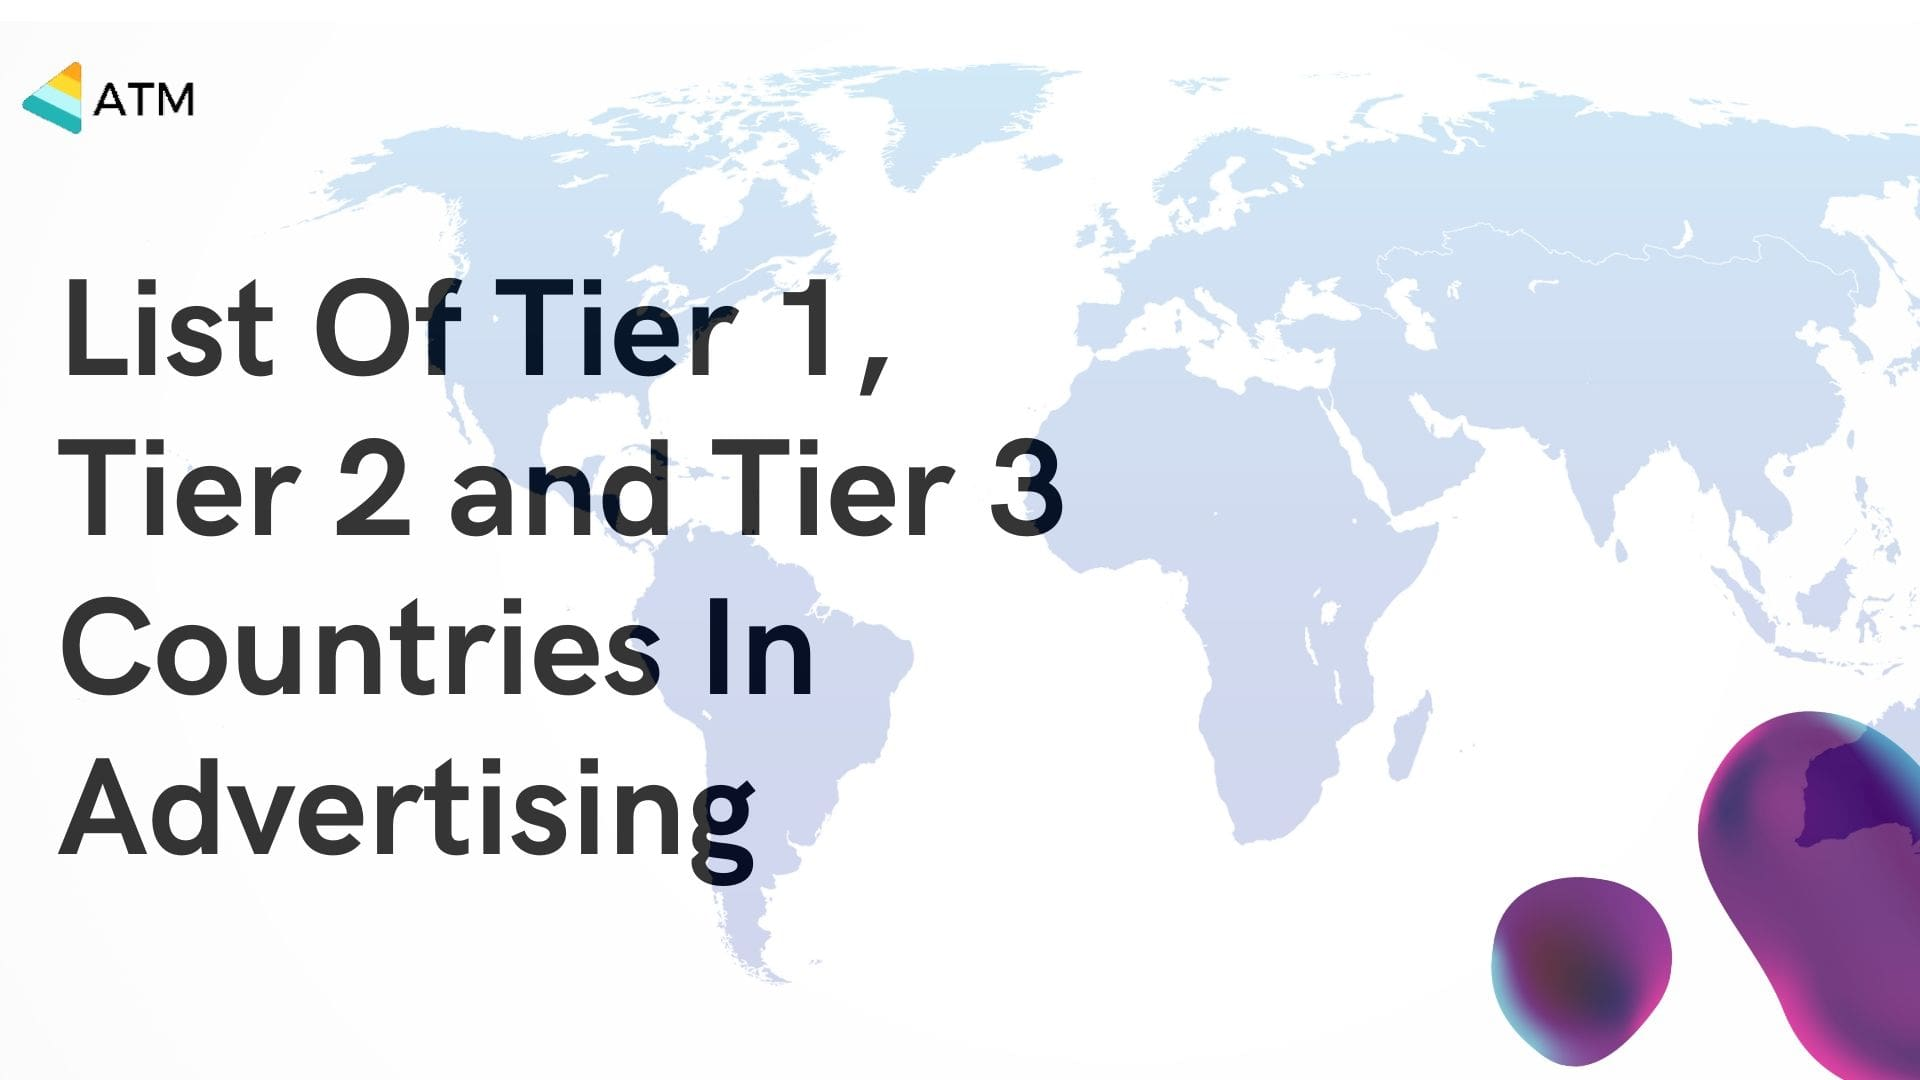 List_Of_Tier1_Tier2-3_Countries_in_Advertising-min